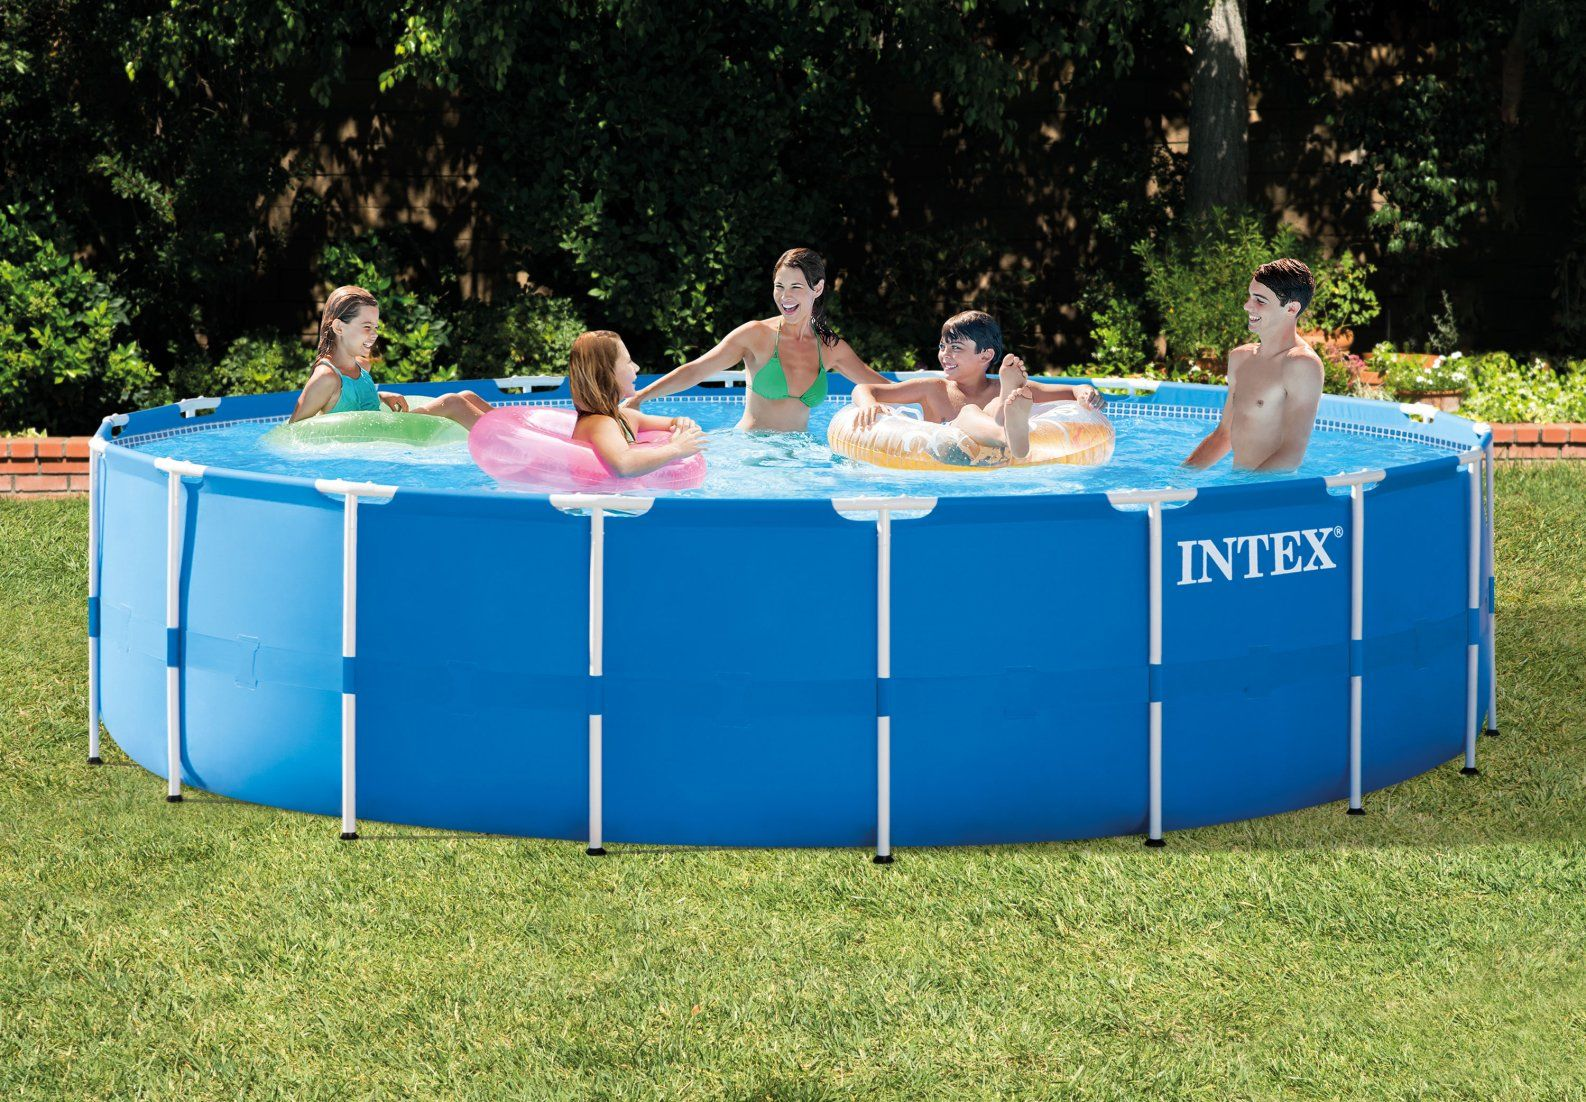 best metal frame pool intex metal frame pool review. Black Bedroom Furniture Sets. Home Design Ideas